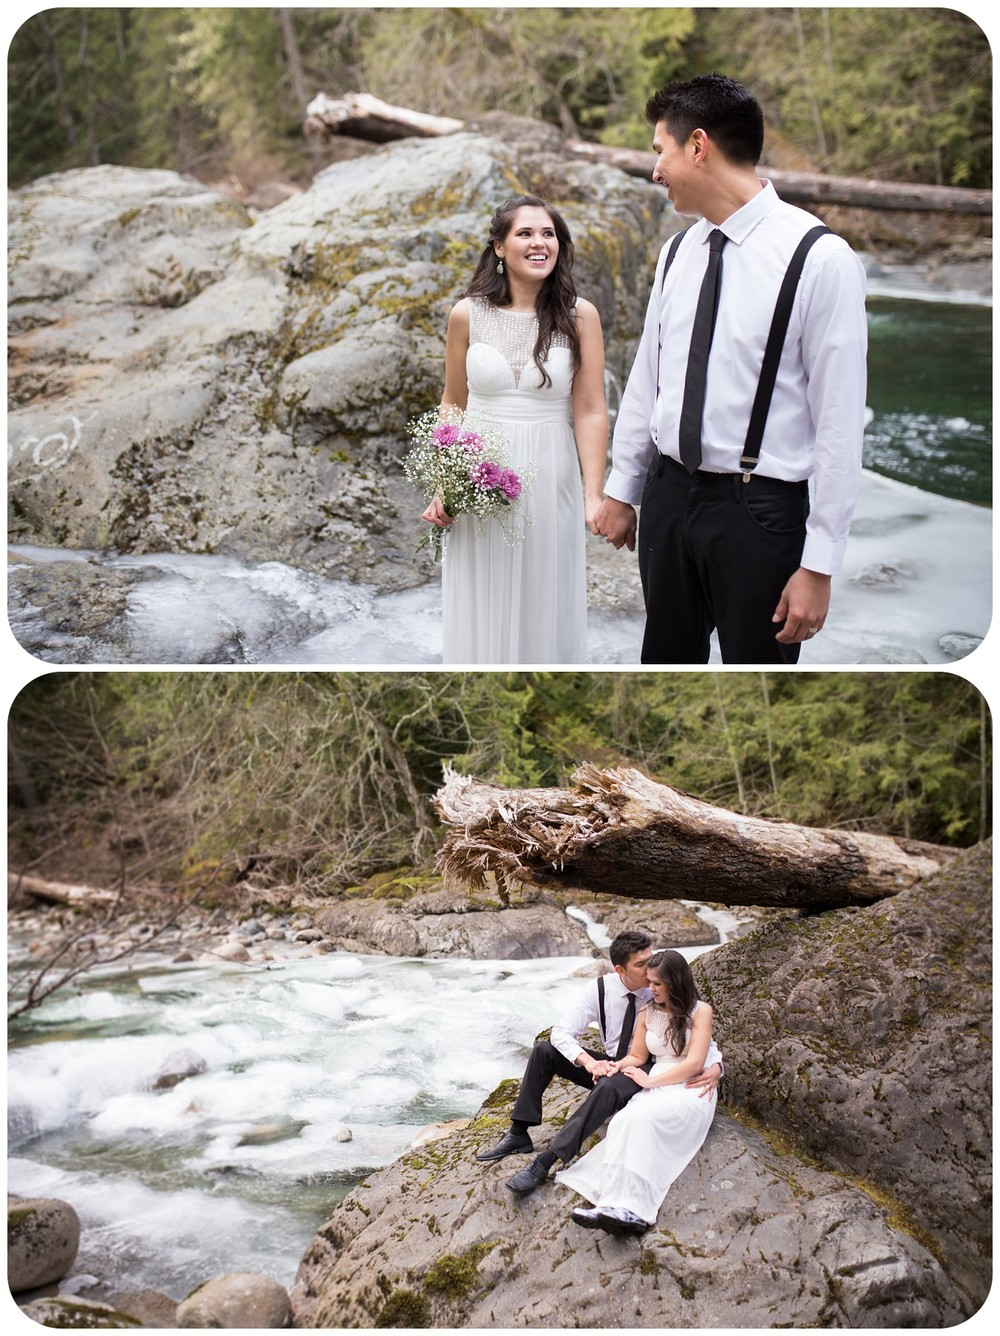 breathtaking wedding photos, river wedding photos, landscape wedding photography, englishman river falls elopement photographer